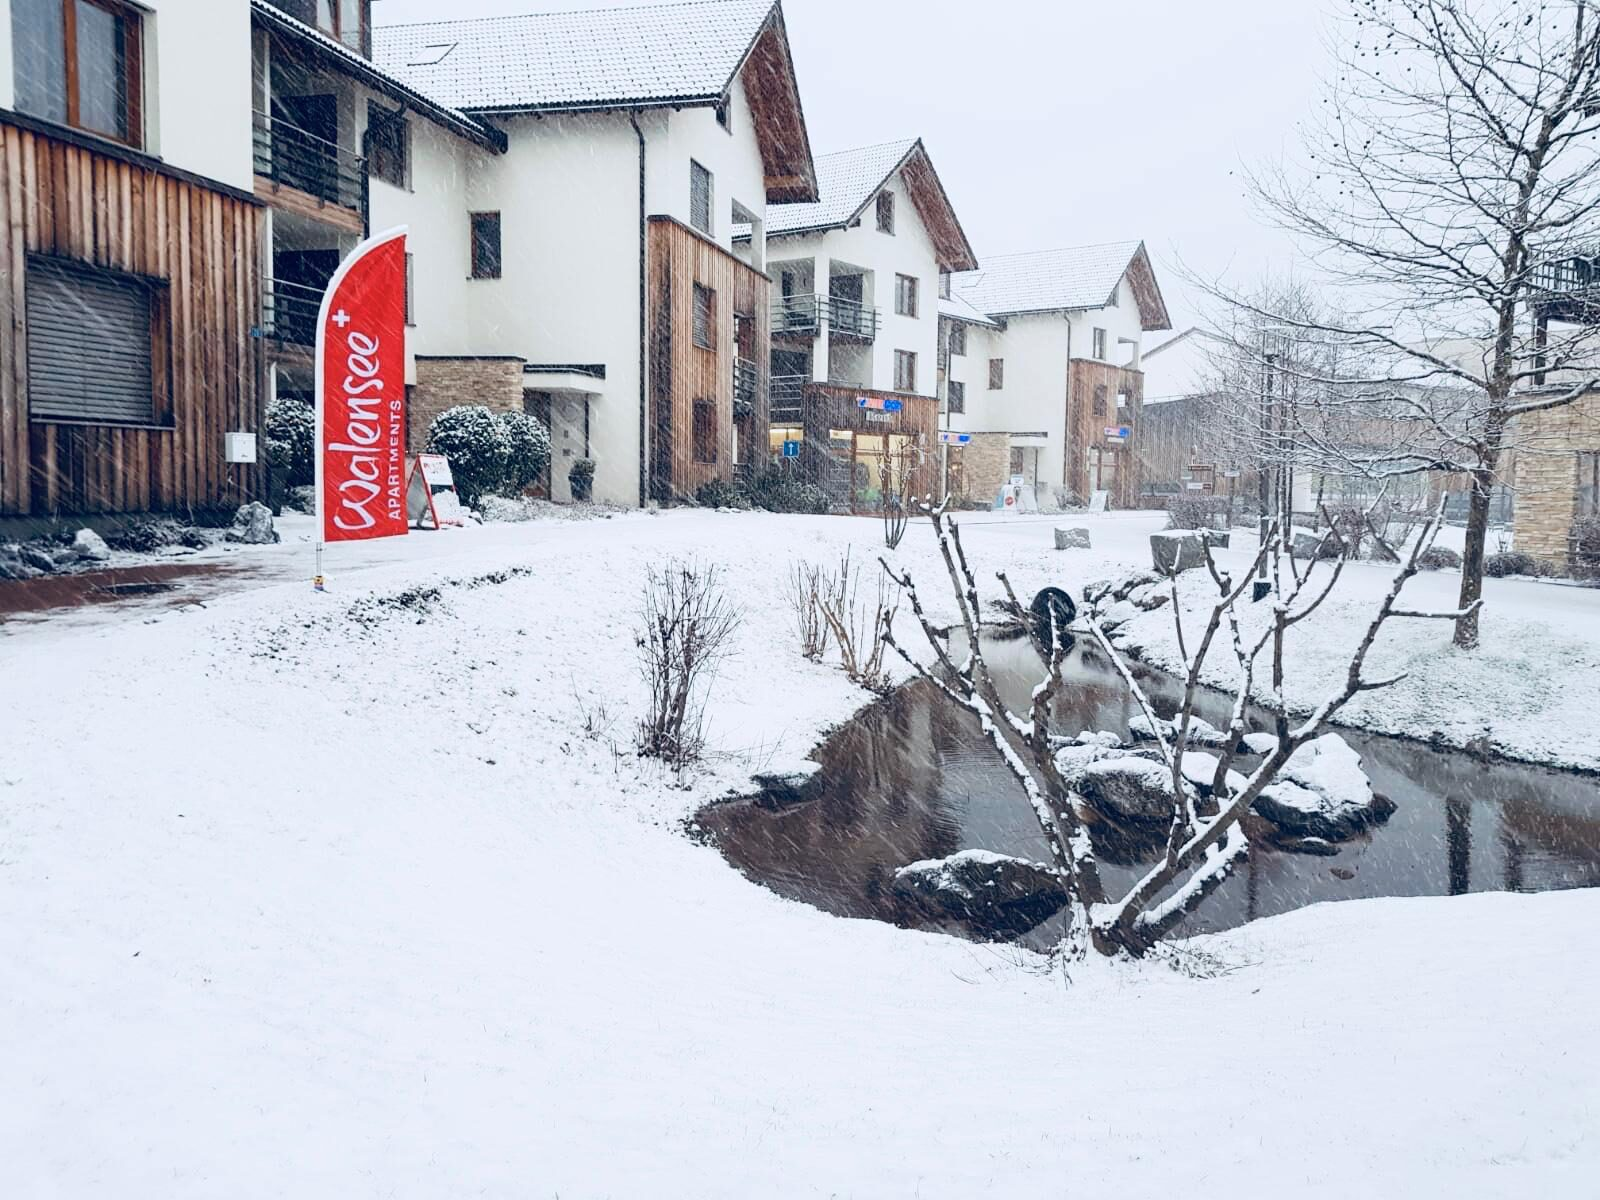 Resort Walensee apartments, a small village right by Flusmerberg and next to the lake Walensee , is ideal for your winter holidays